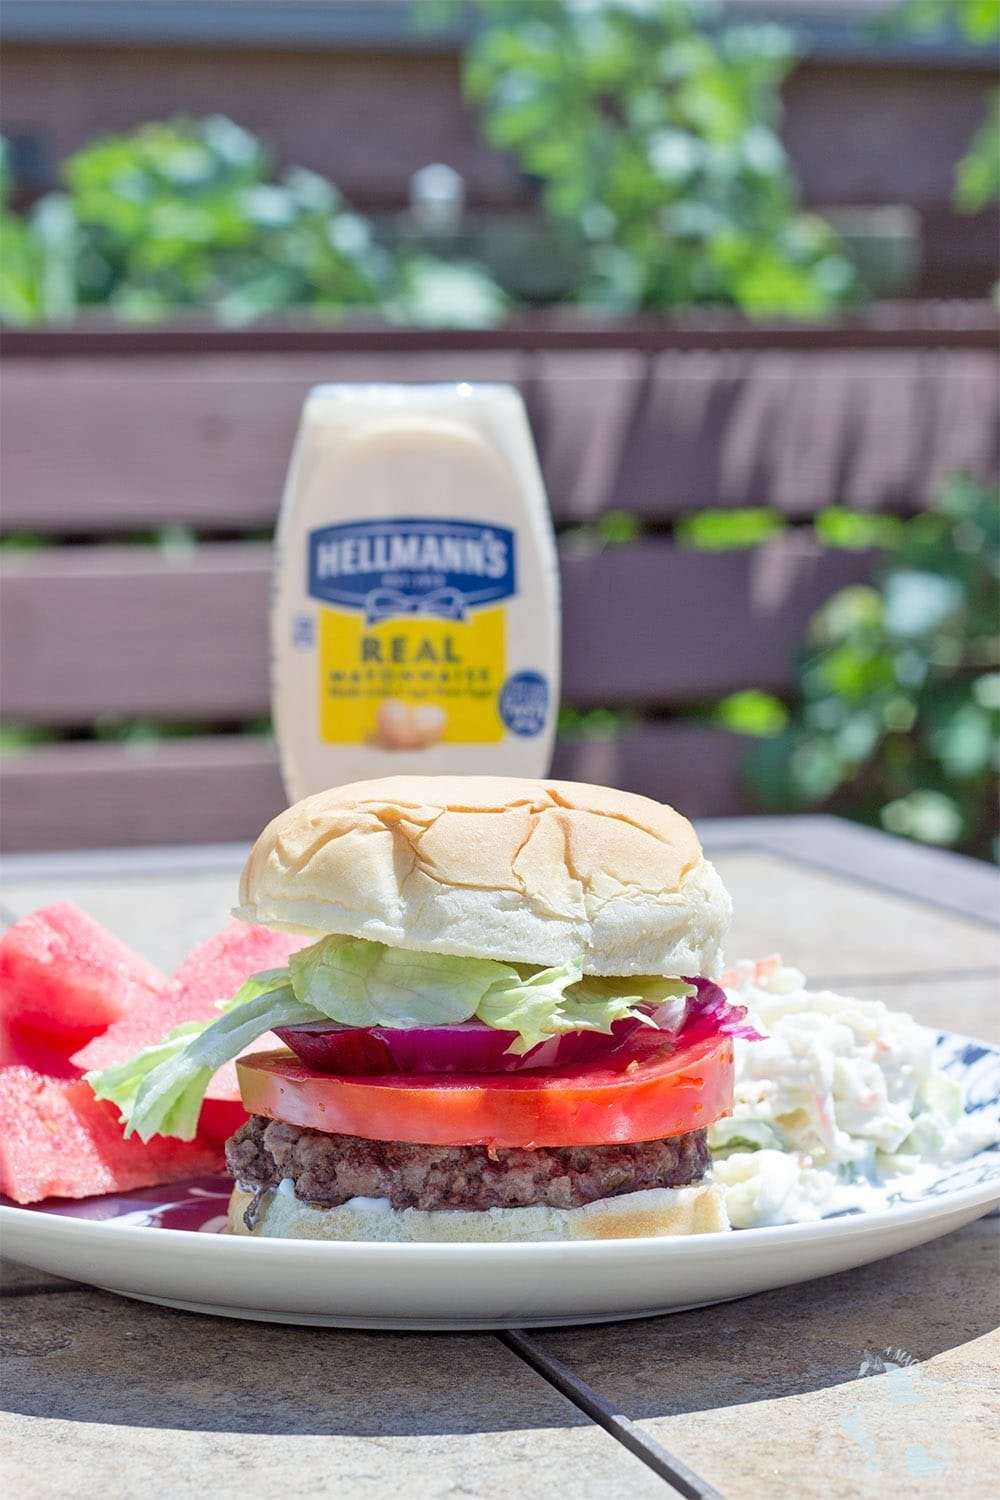 Best burger recipe with Hellman's